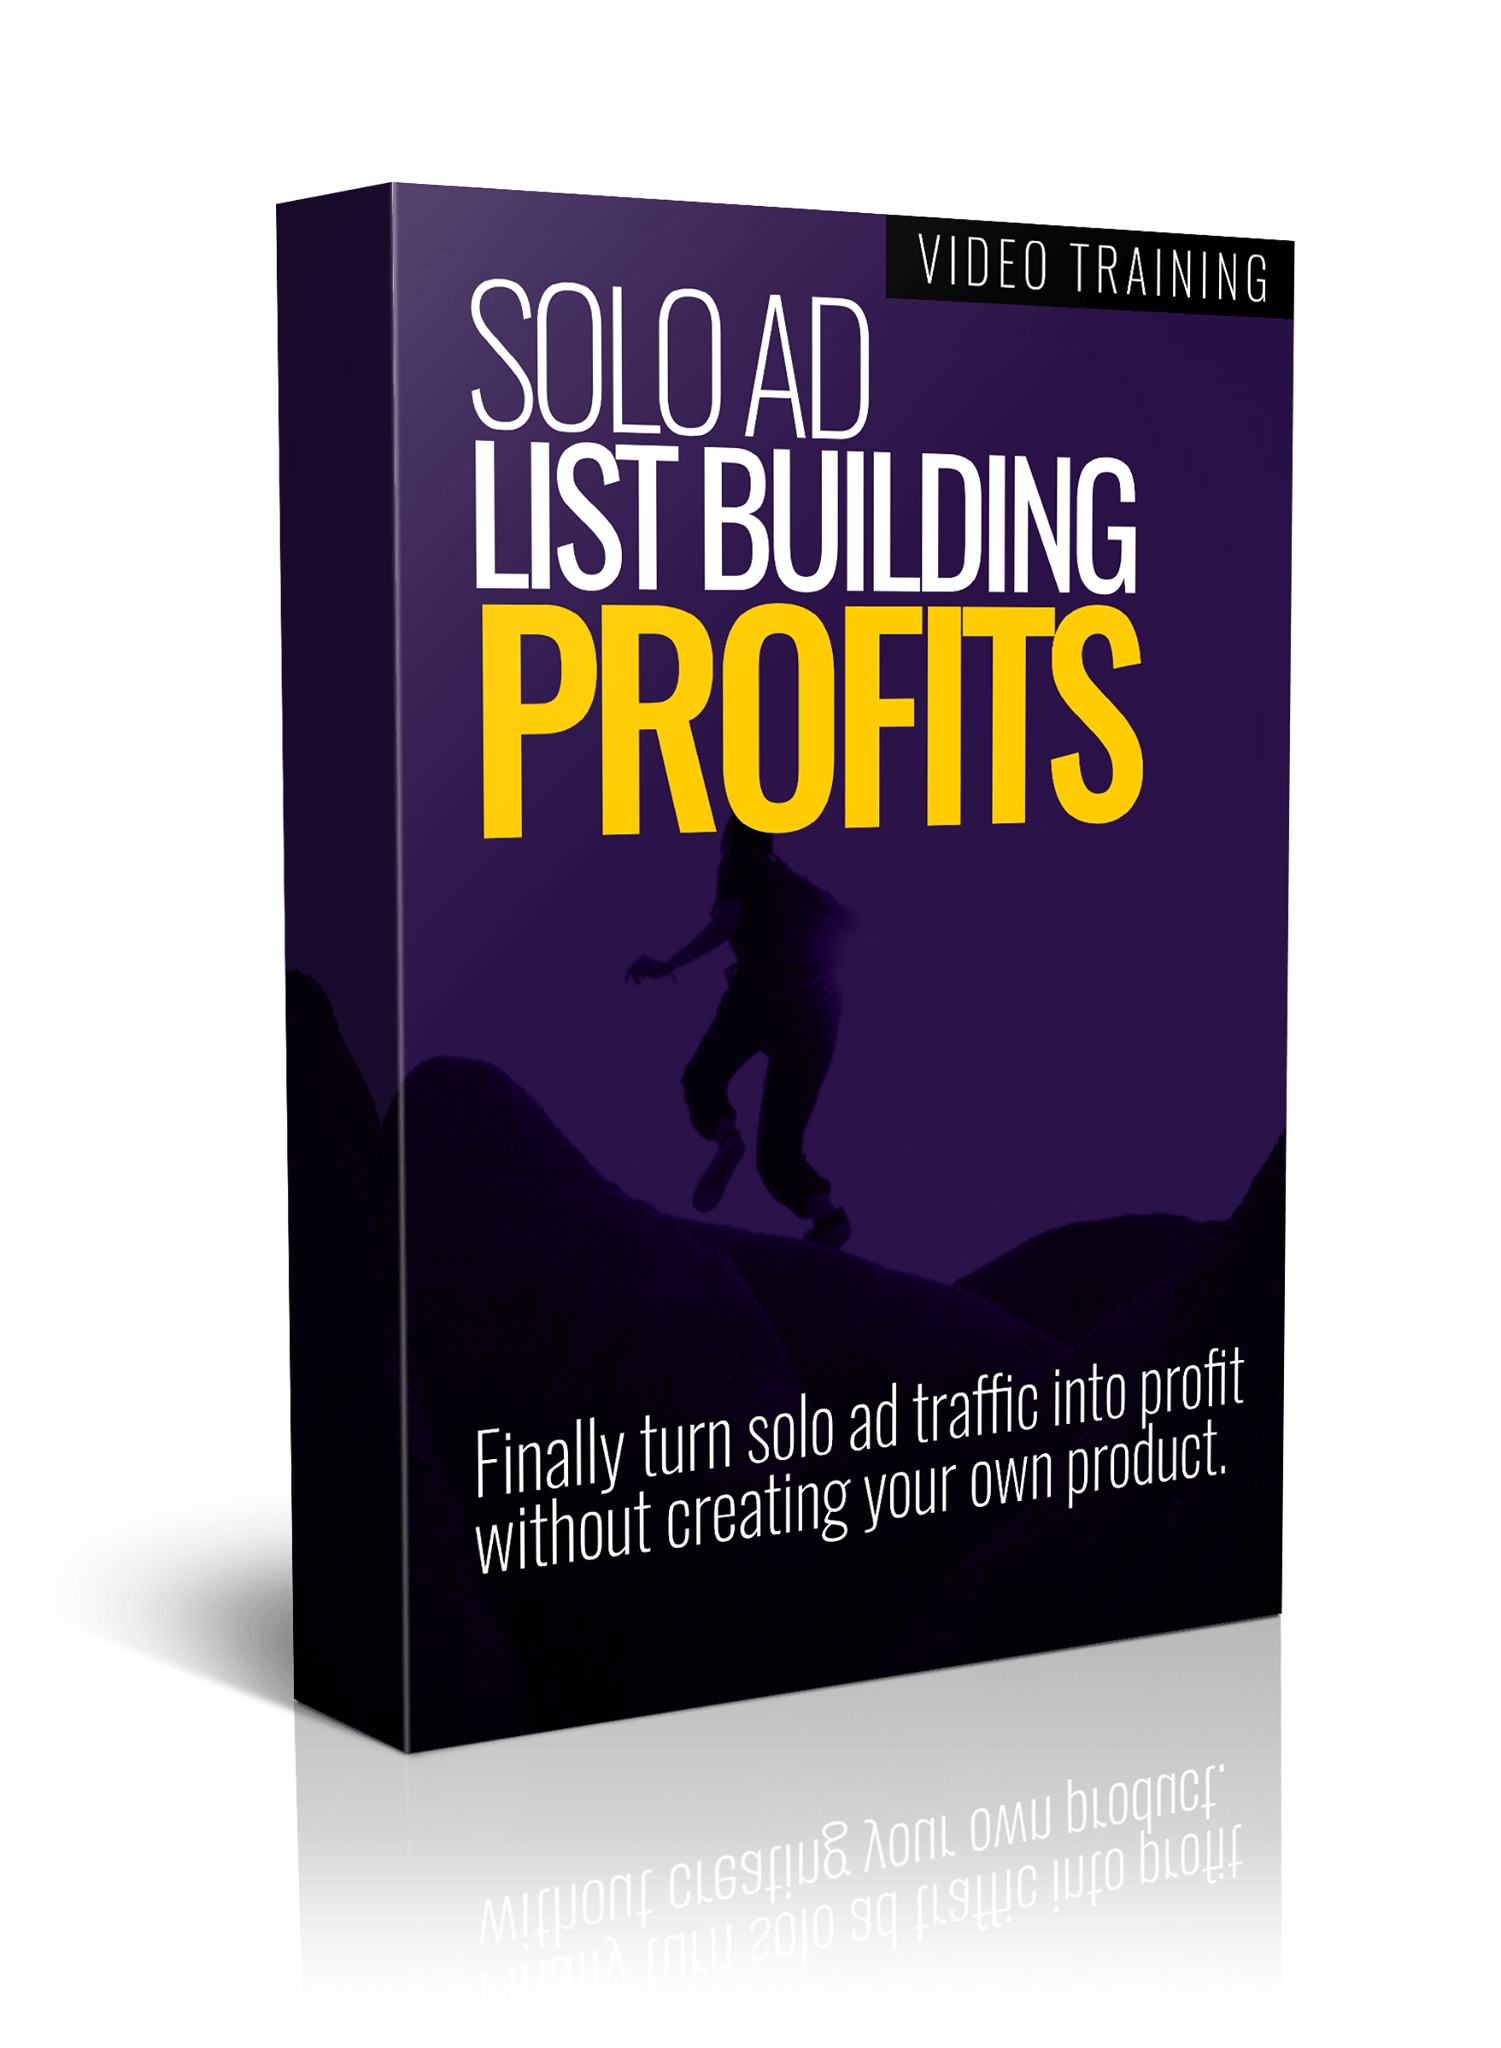 Solo Ad List Building Profits